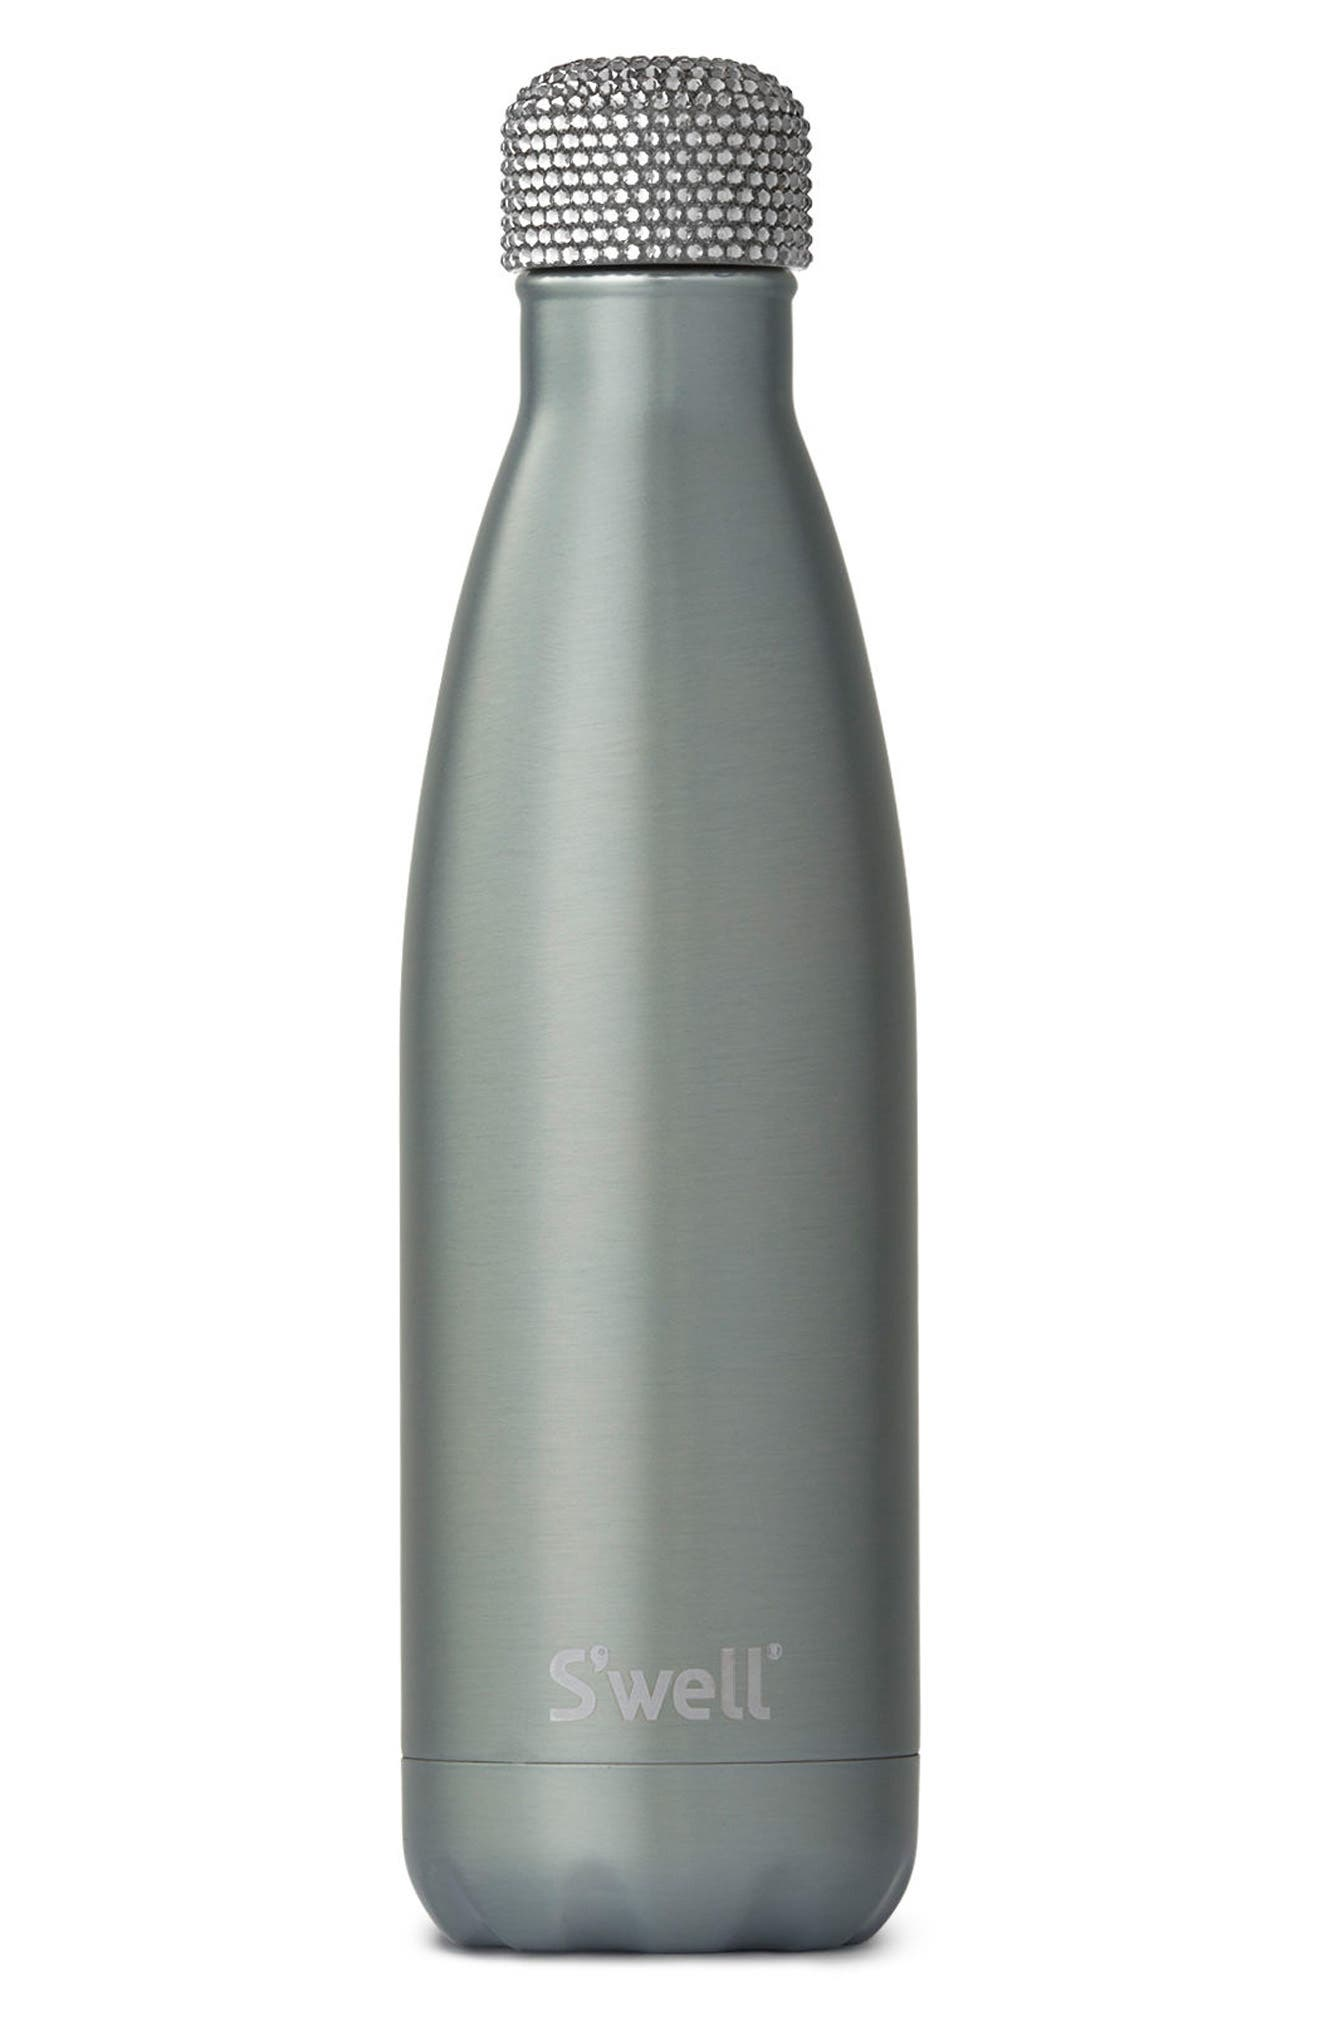 Alternate Image 1 Selected - S'well Radiance Swarovski Crystal Water Bottle (Limited Edition)